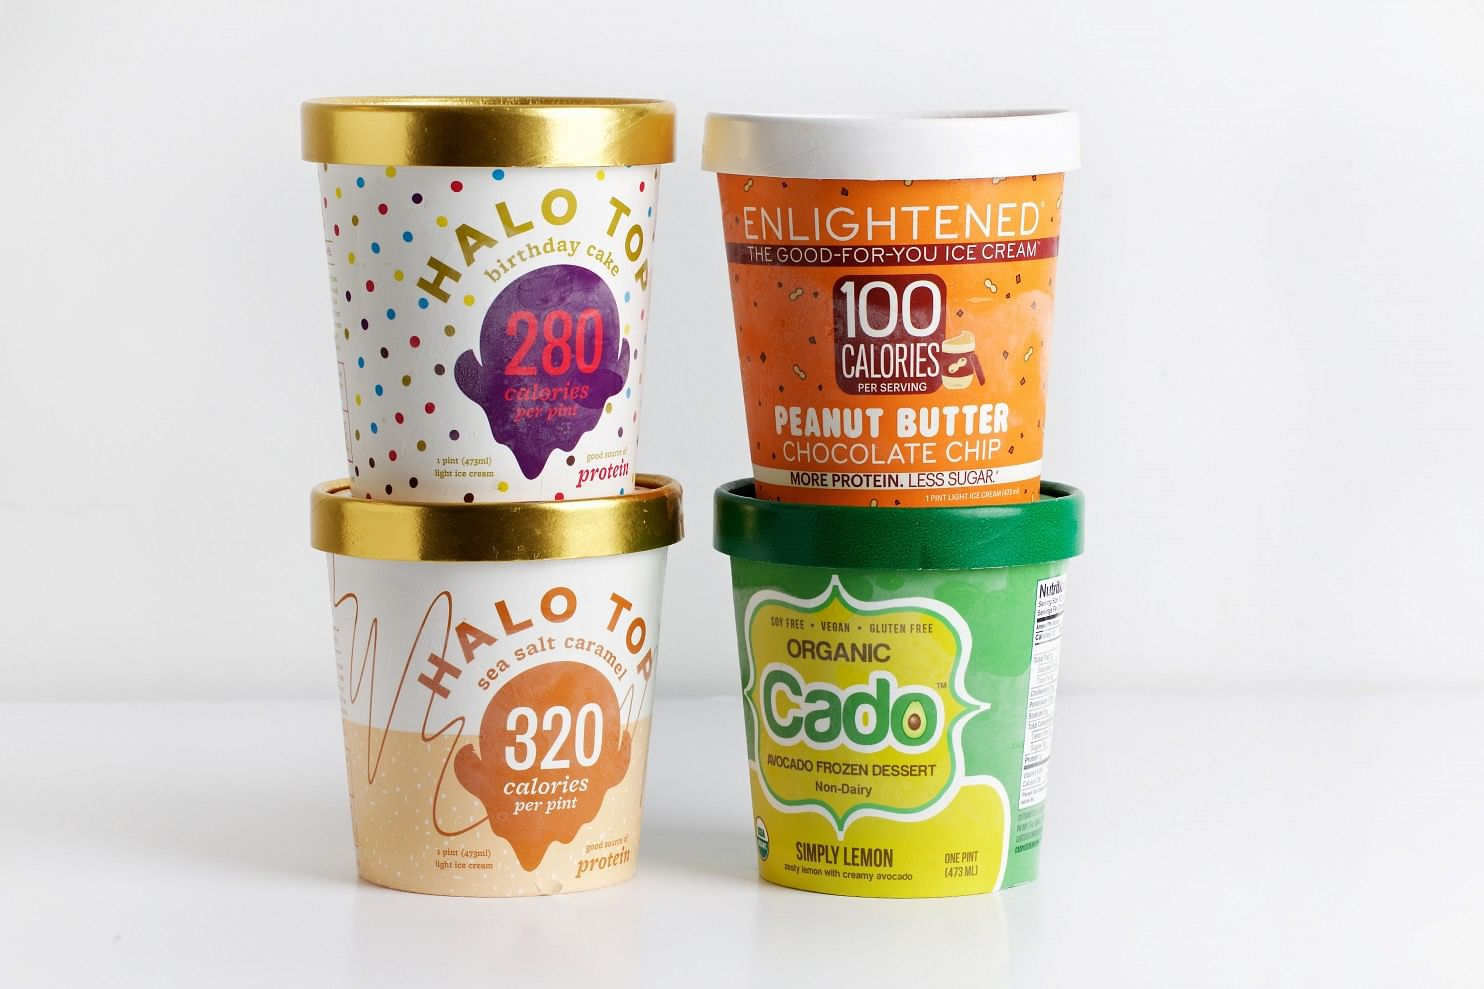 Four Other Offerings Birthday Cake And Sea Salt Caramel From Halo Top Enlighteneds Peanut Butter Chocolate Chip Cados Simply Lemon